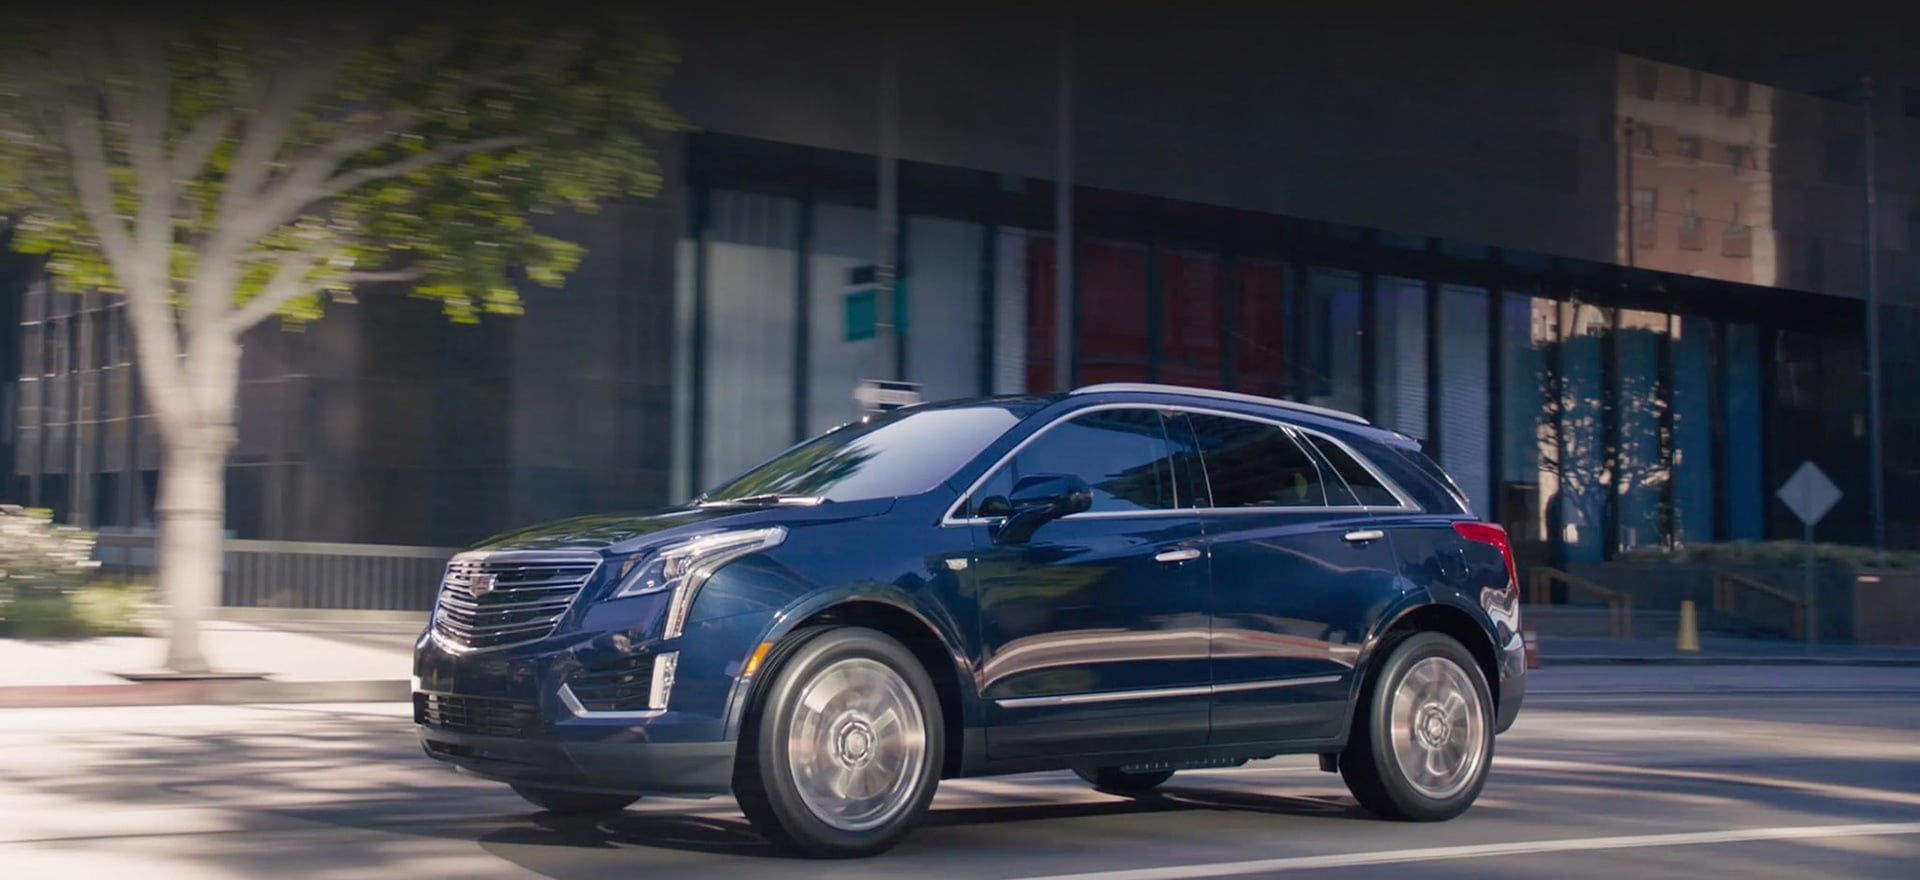 Cadillac SUV driving on a city street